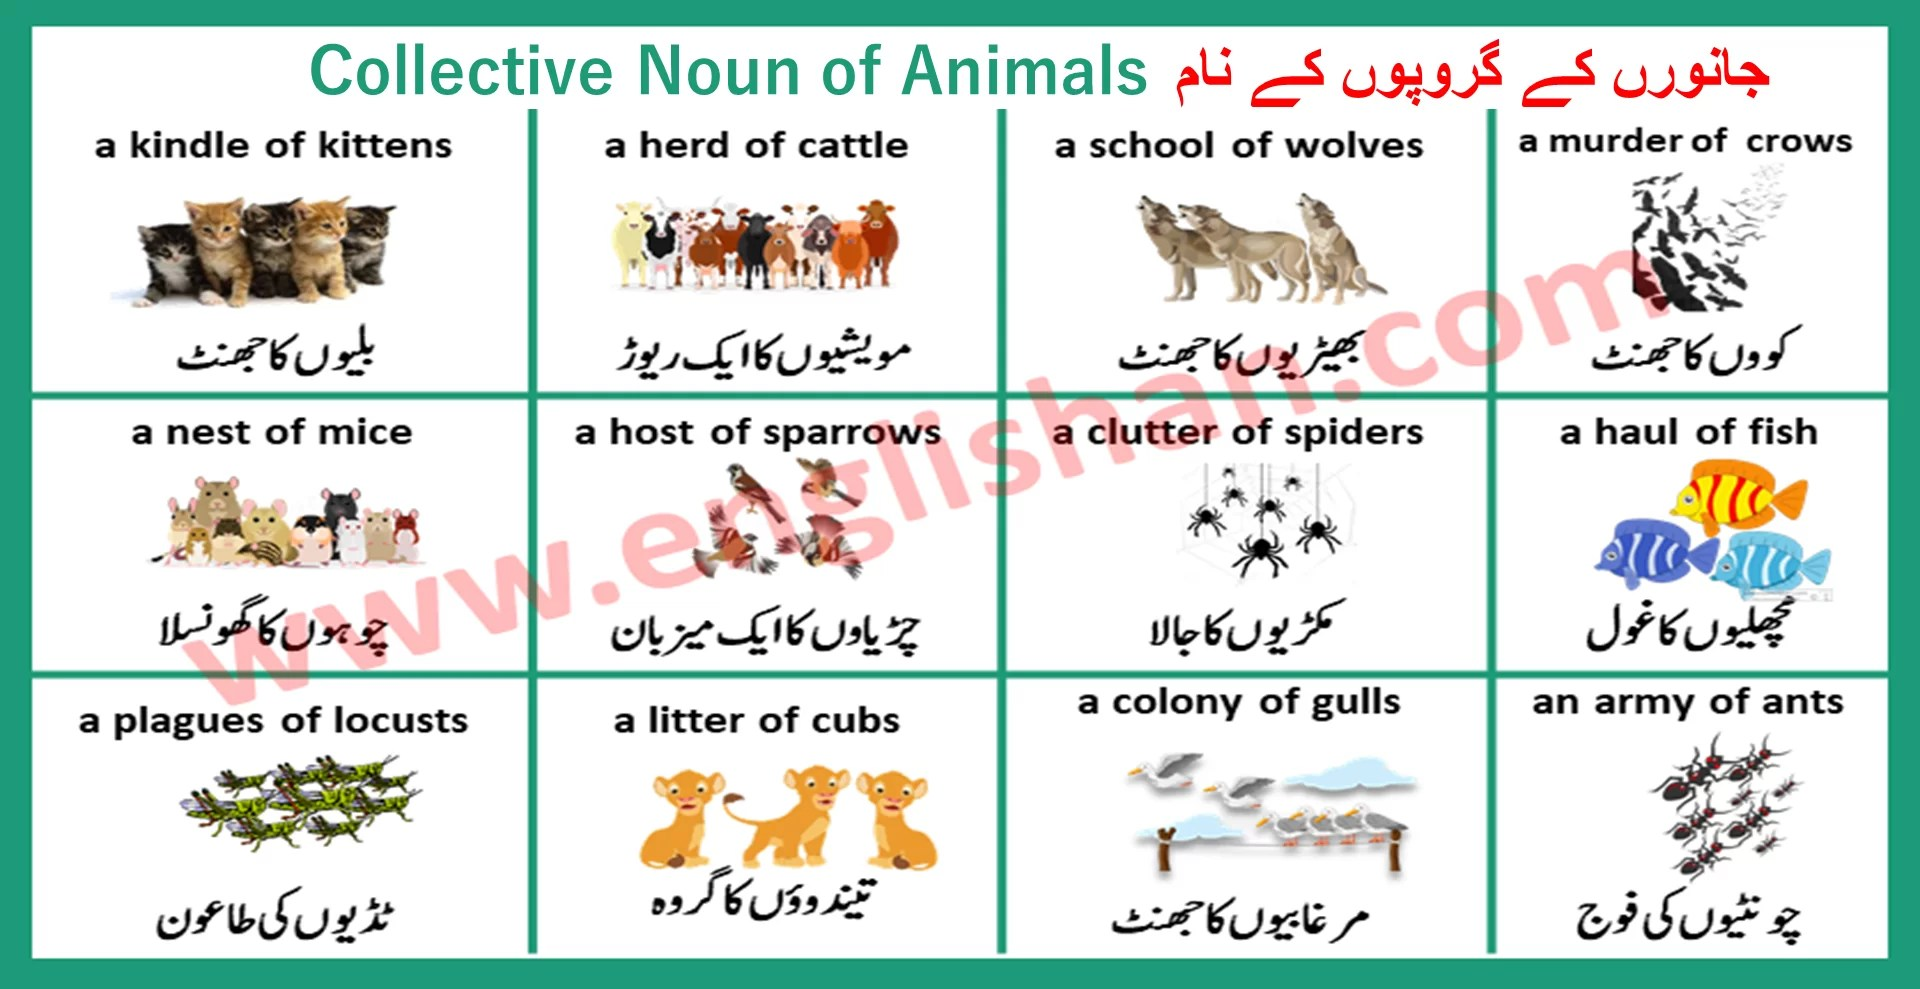 100 Examples Of Collective Nouns List Things Animals